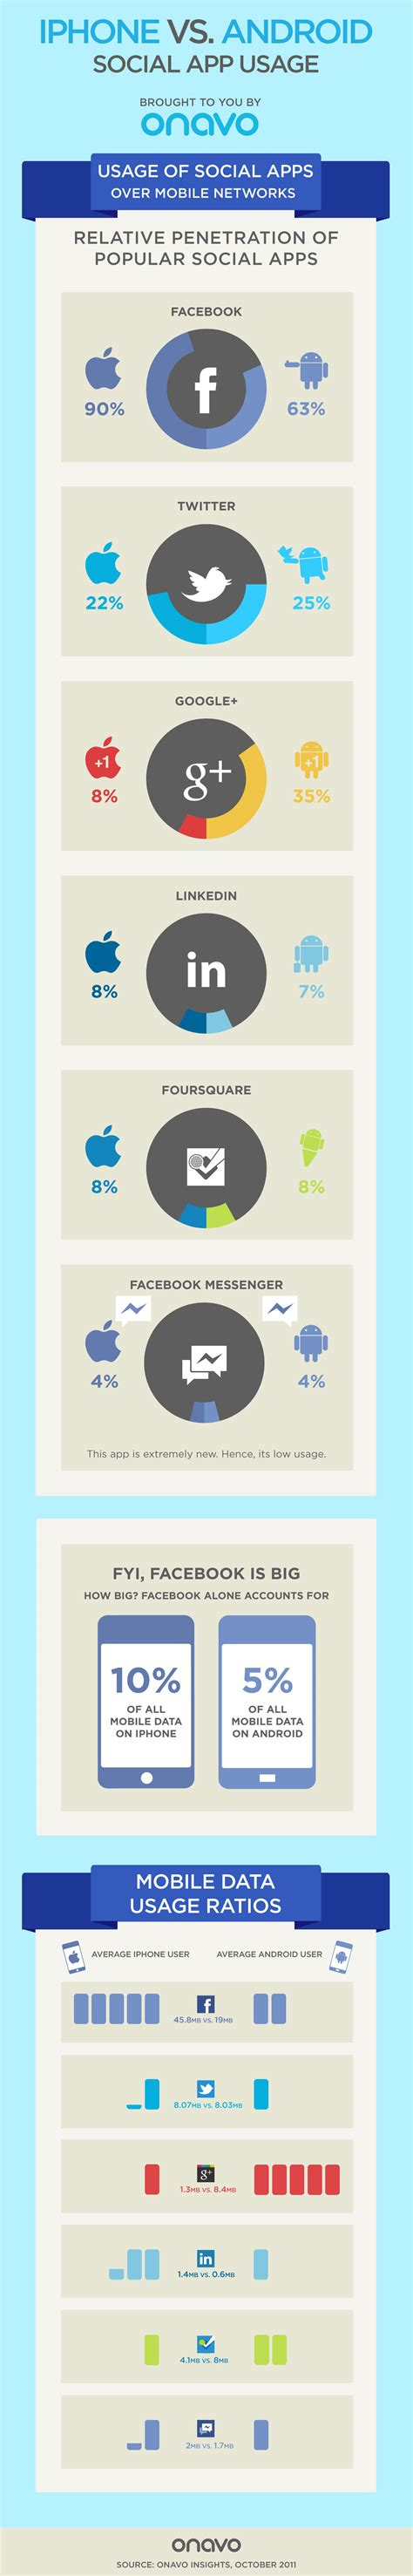 iphone versus android social app usage iphone vs android